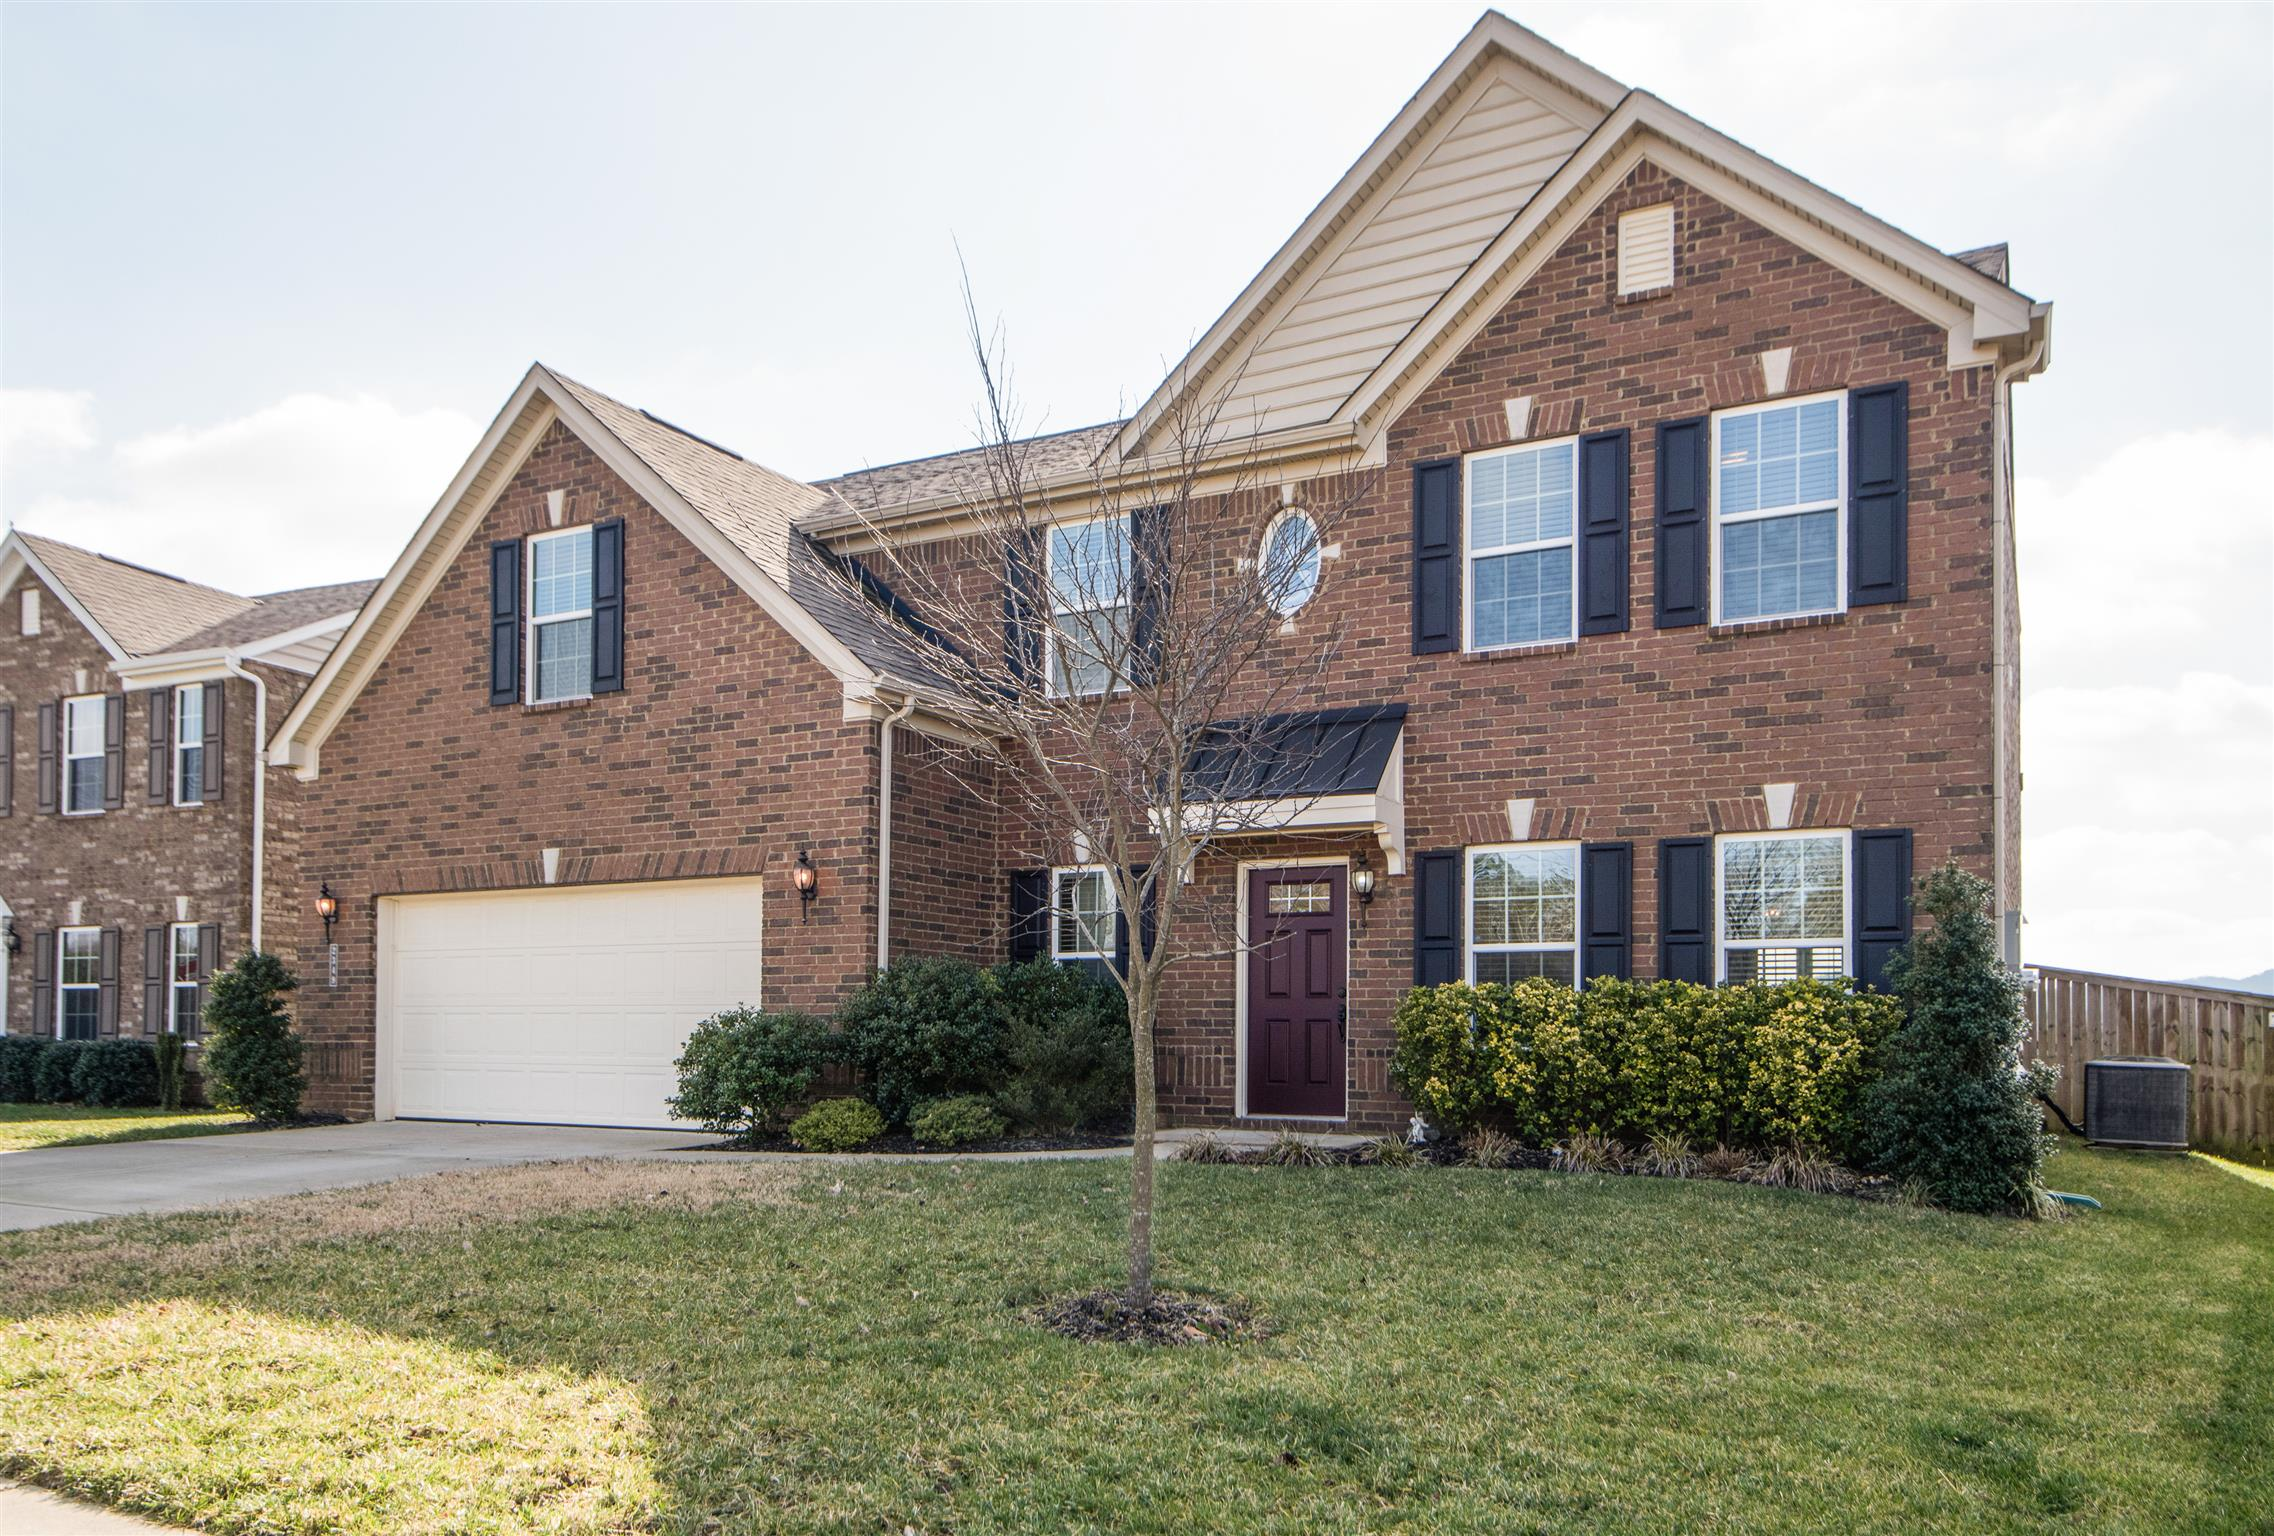 2349 Orchard St, Nolensville in Williamson County County, TN 37135 Home for Sale